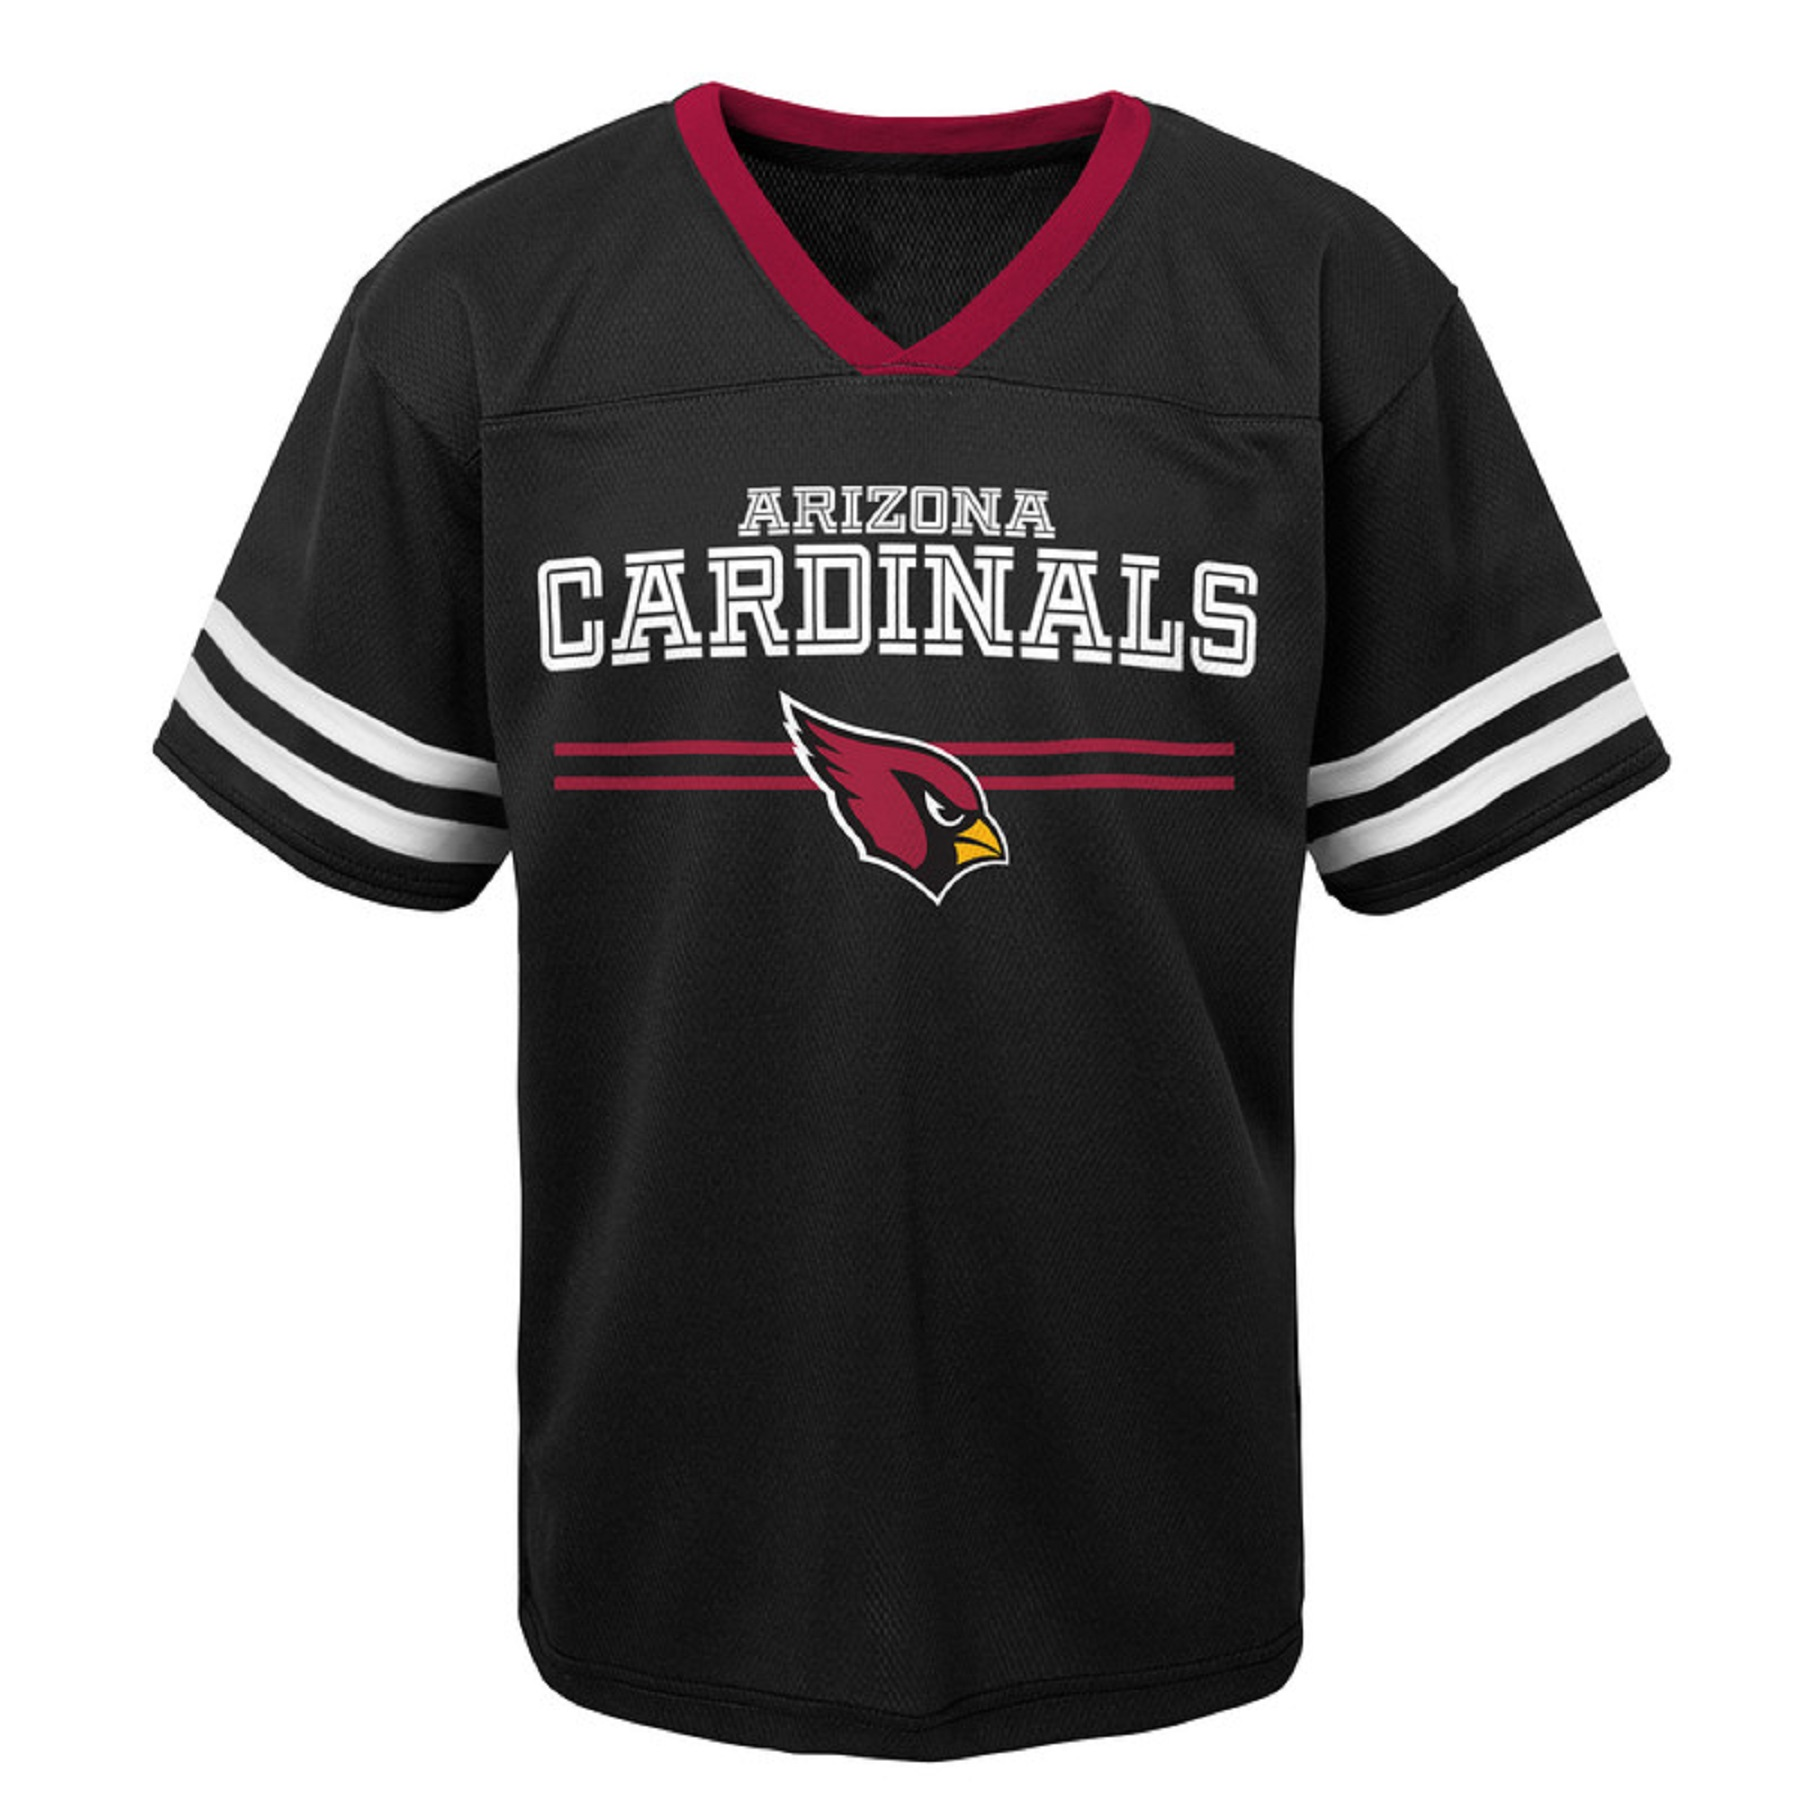 Youth Black Arizona Cardinals Mesh V-Neck T-Shirt